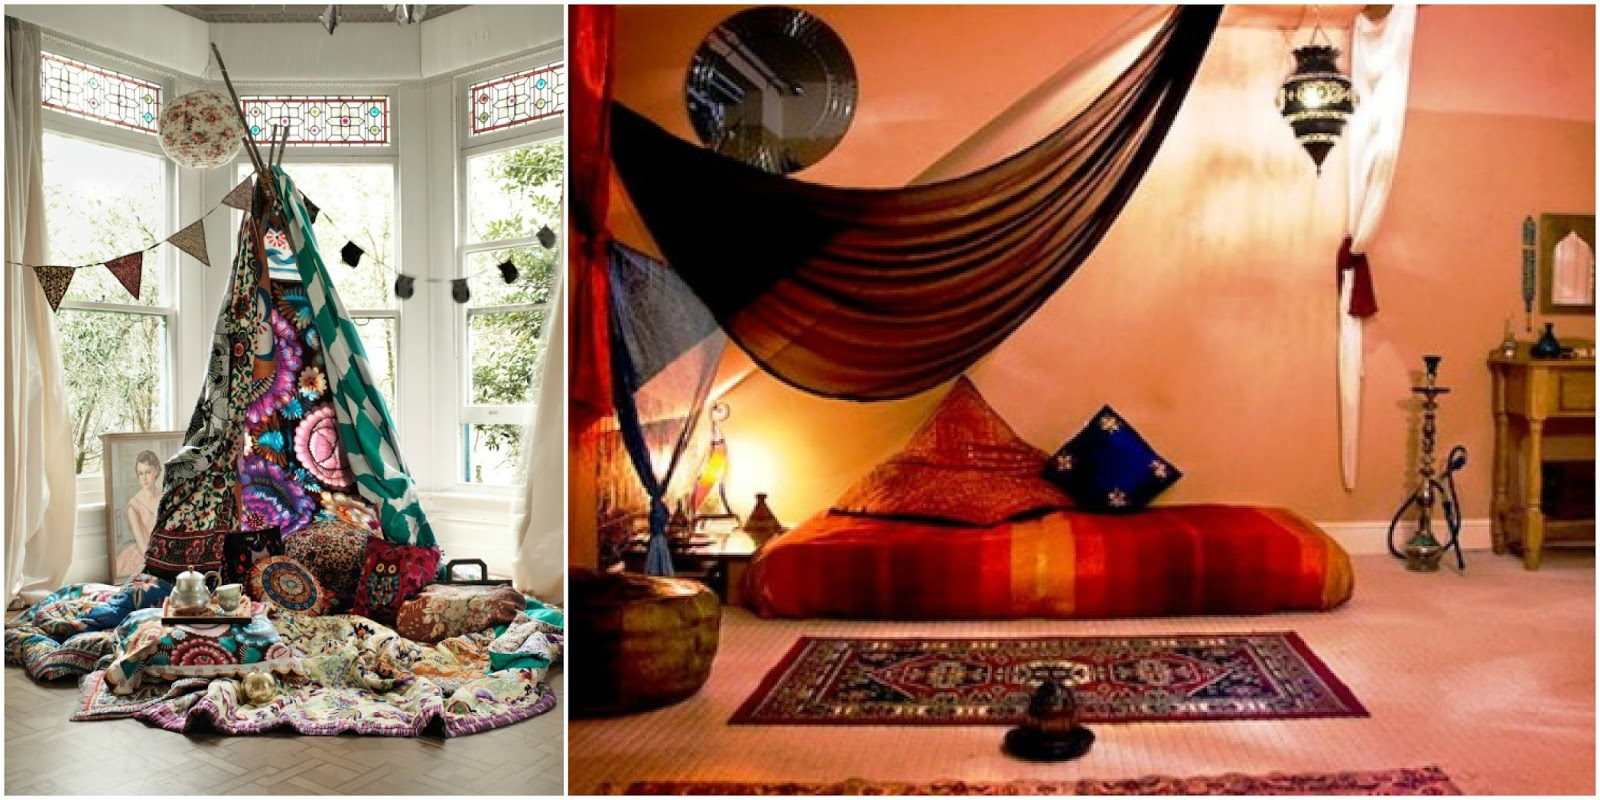 This is definitely a u0027come hitheru0027 design... roarrr! & Drowning in a Boho Canopy Bed! | The House of Boho